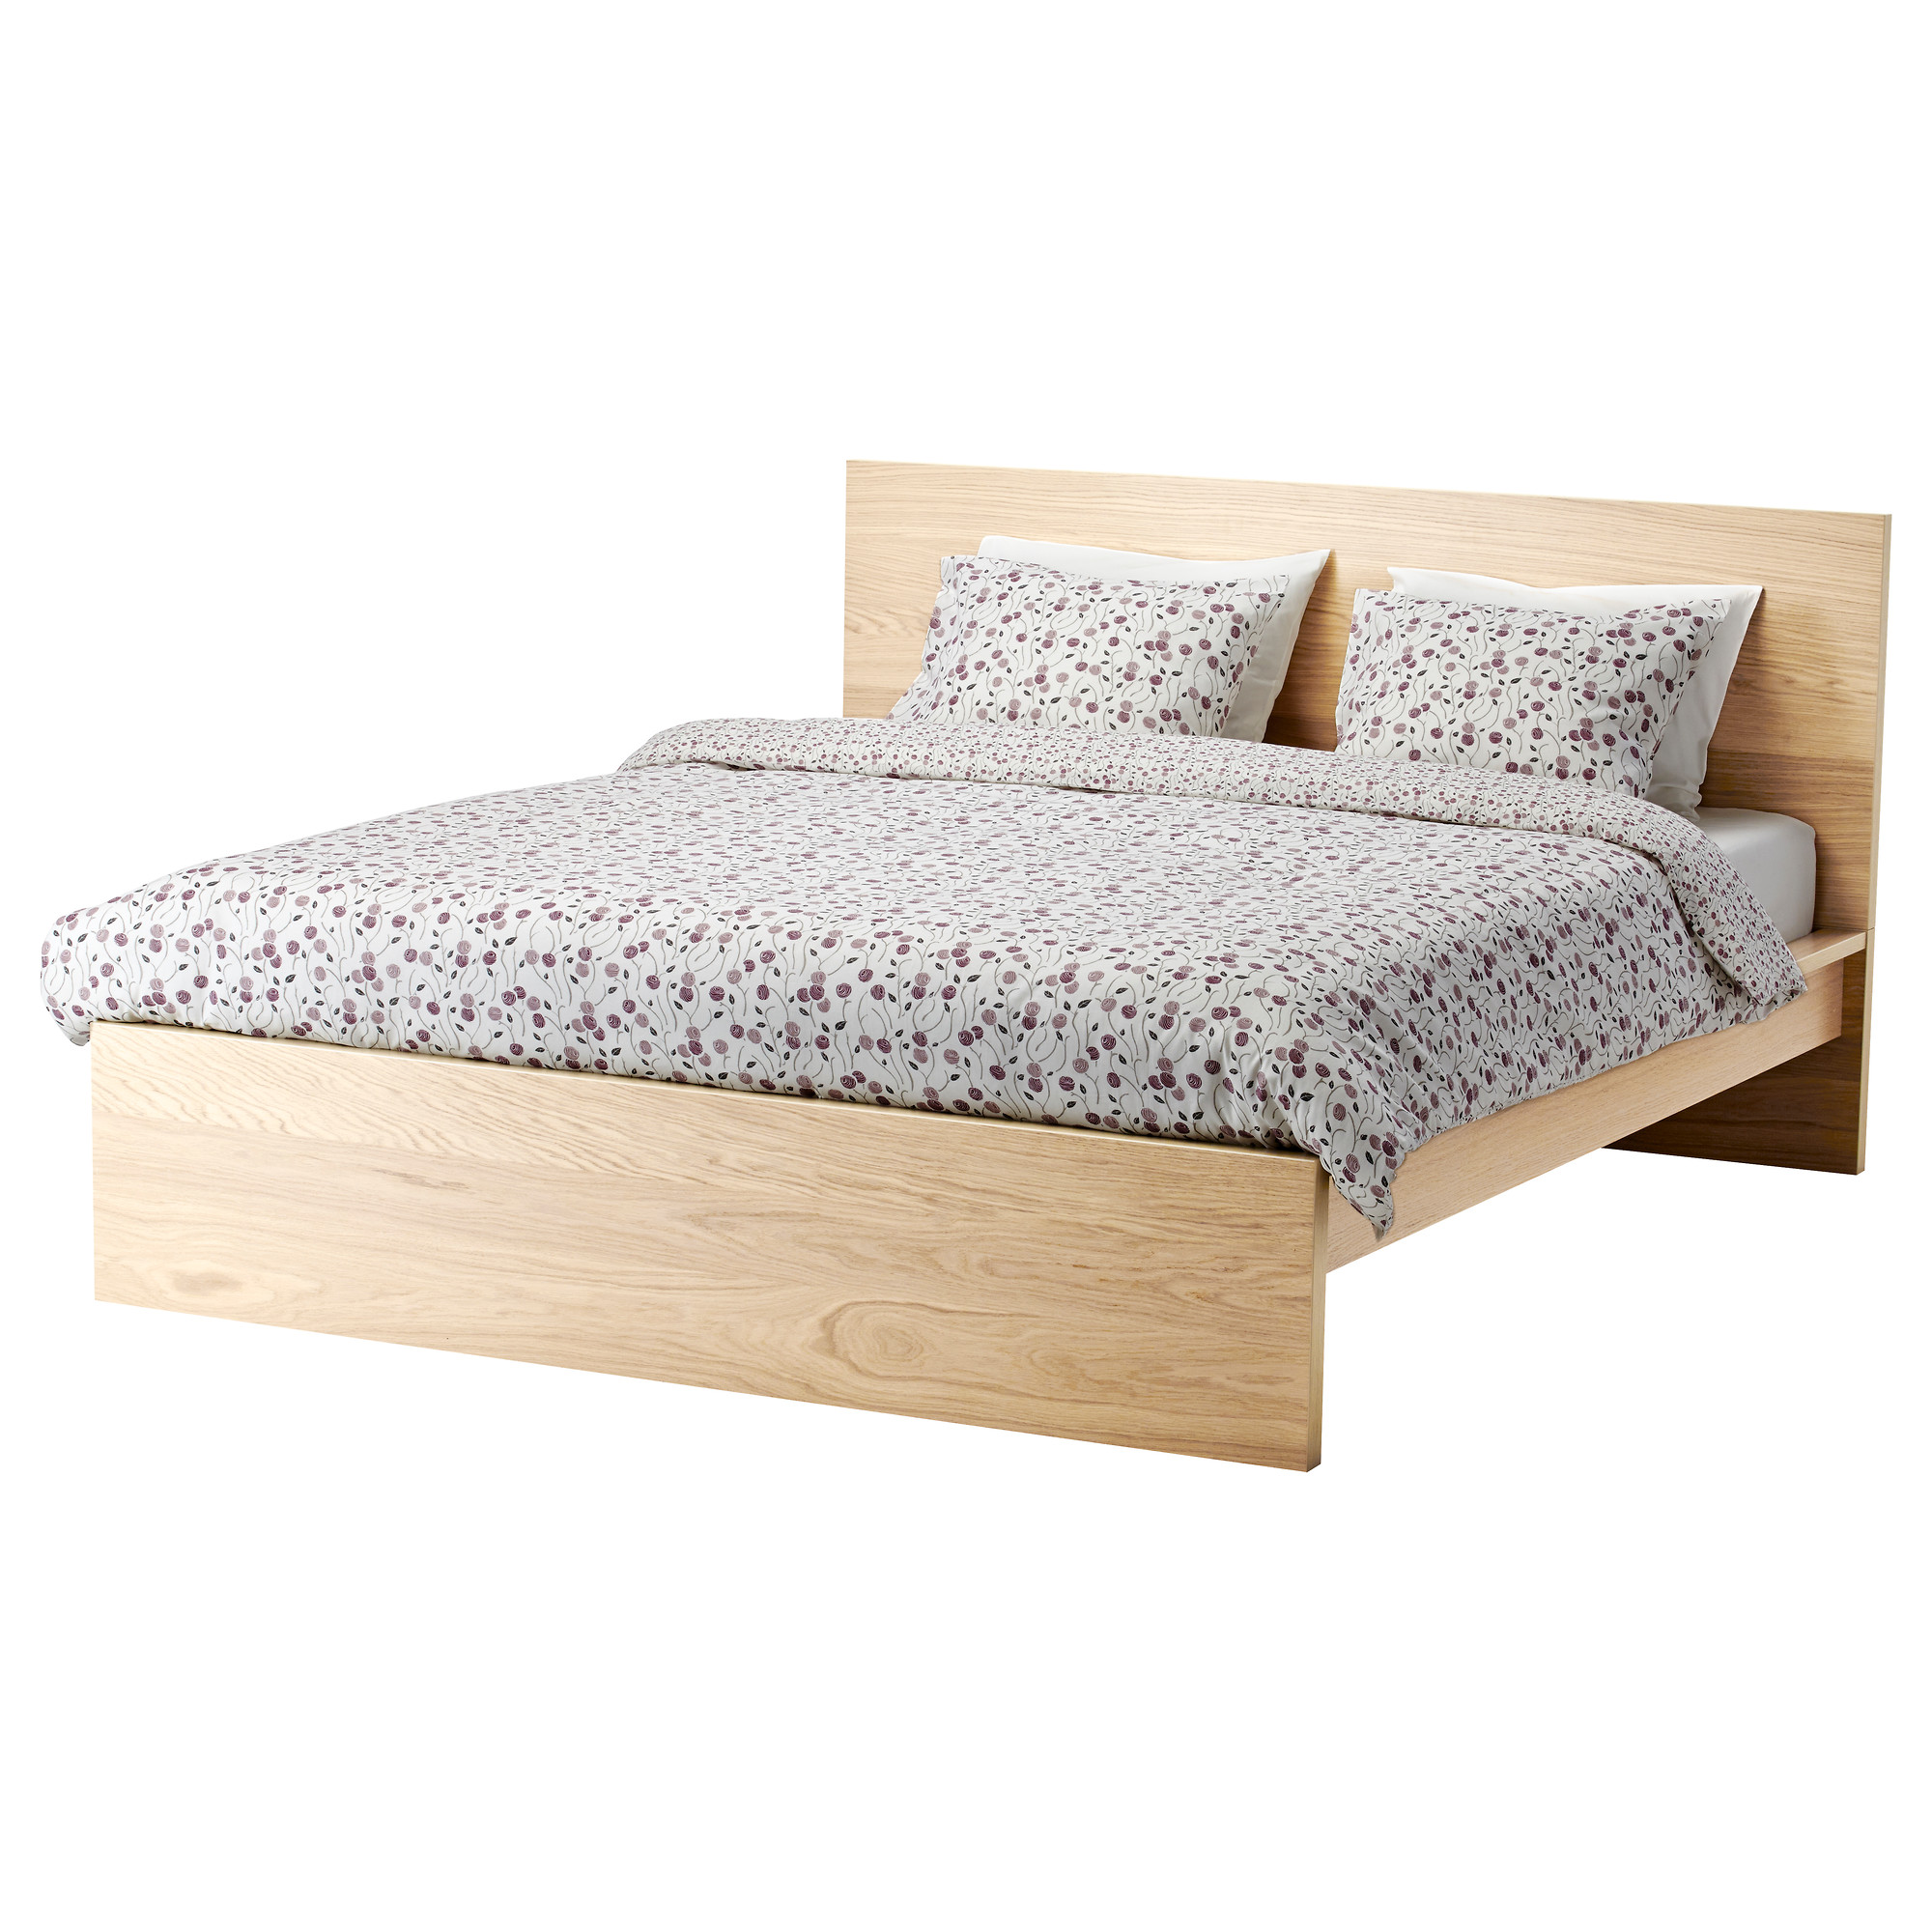 malm bed frame high white stained oak veneer lury length 83 1